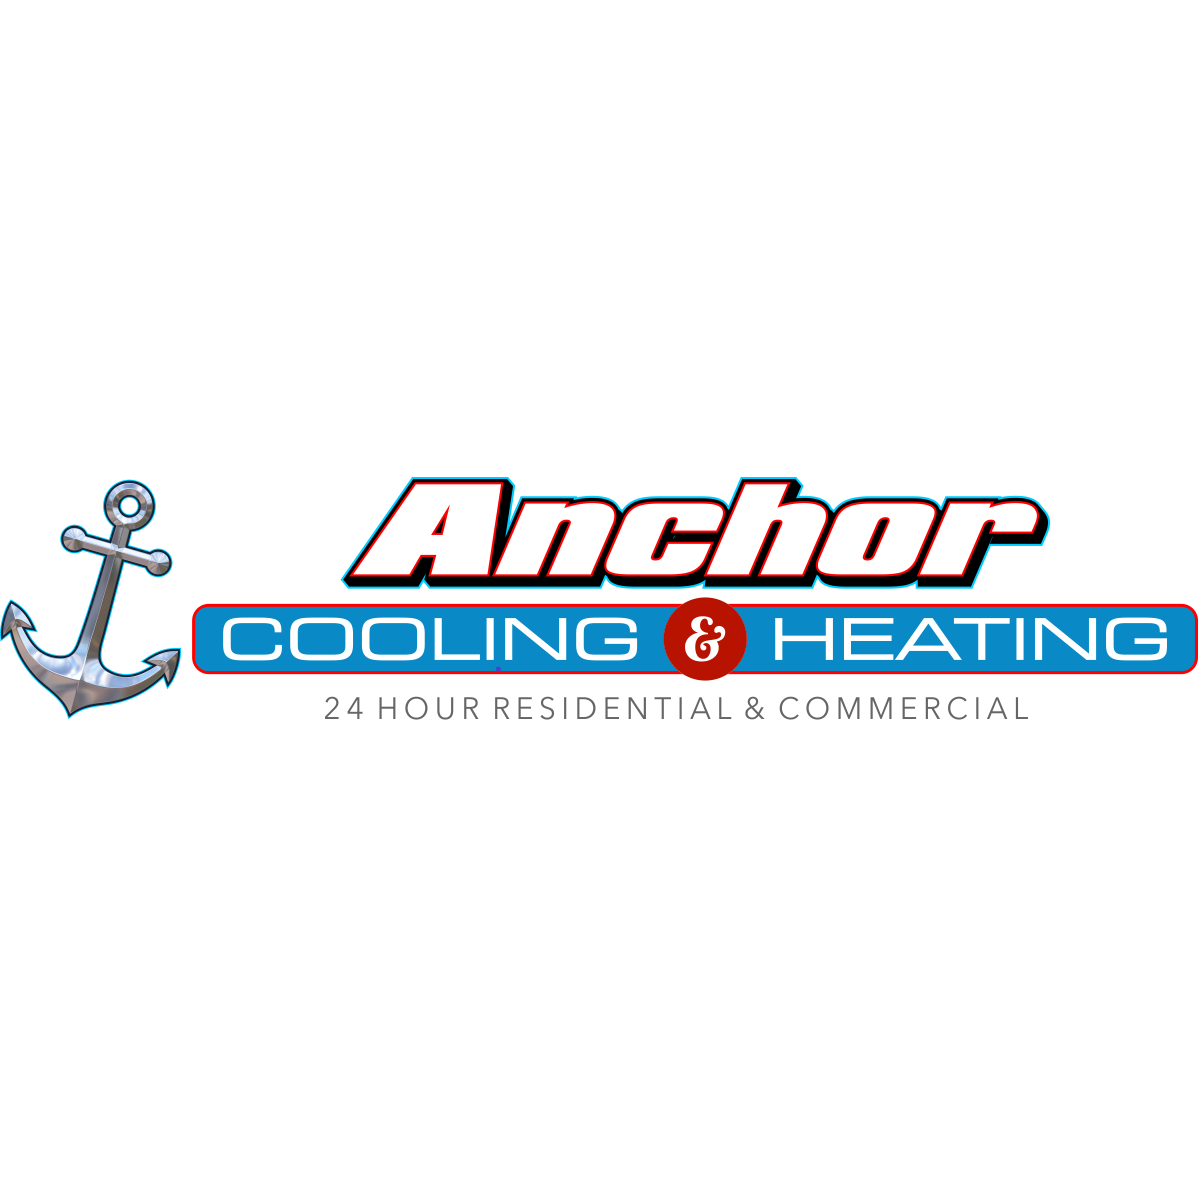 Anchor Cooling & Heating